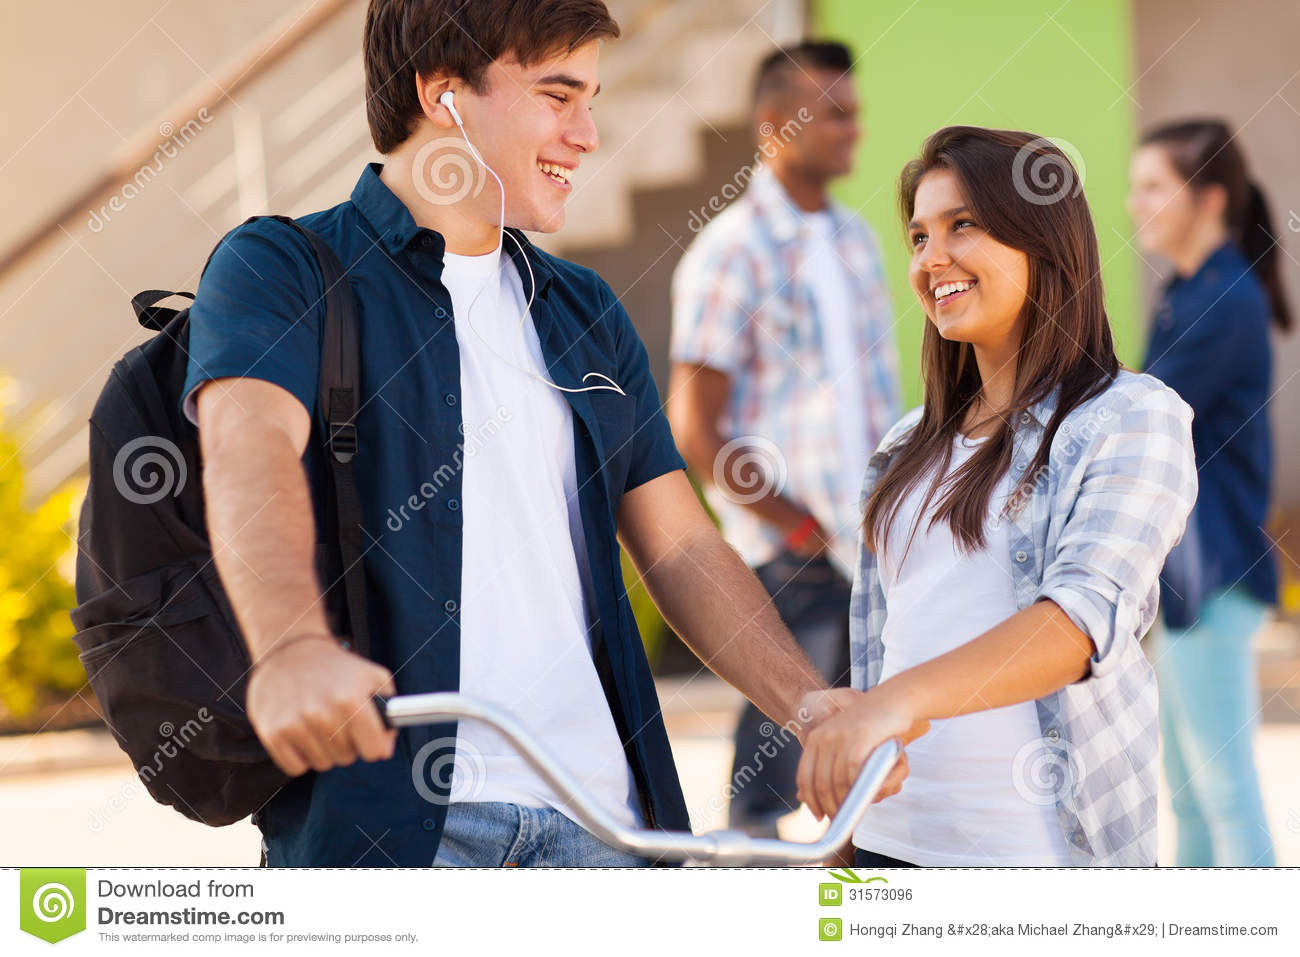 High School Friends Royalty Free Stock Image - Image: 31573096